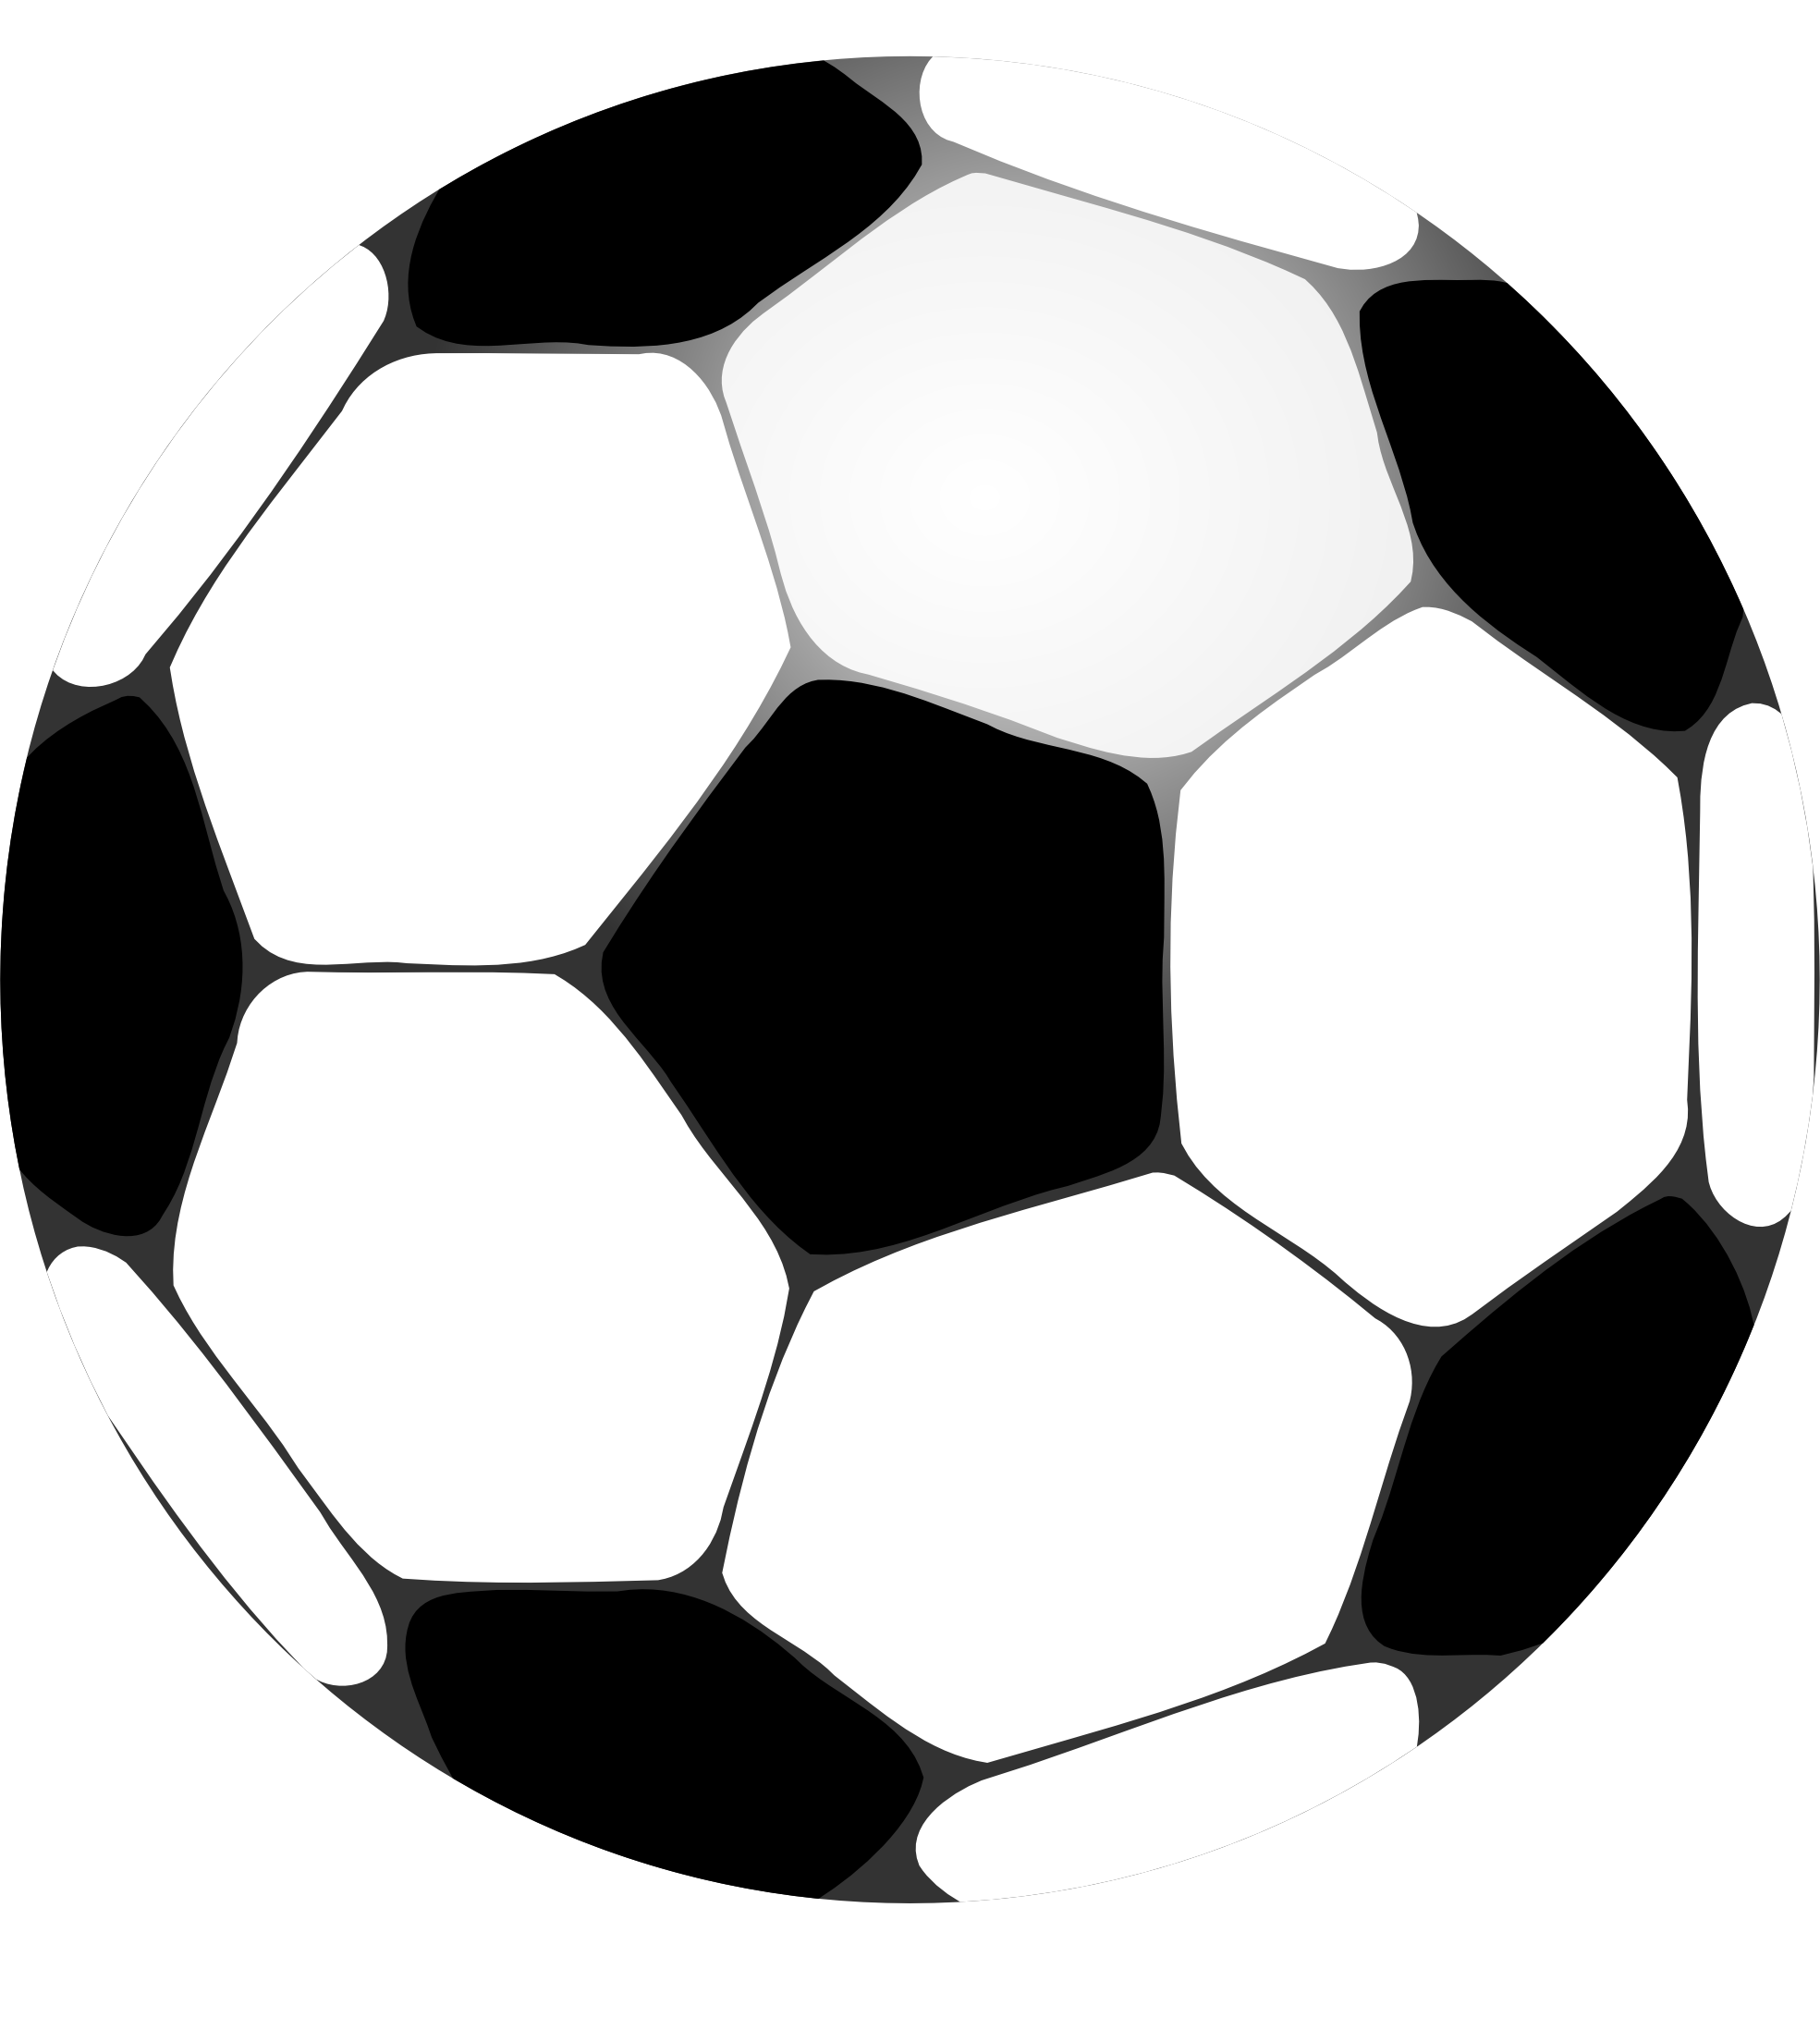 Clipart football template. Soccer ball clip art